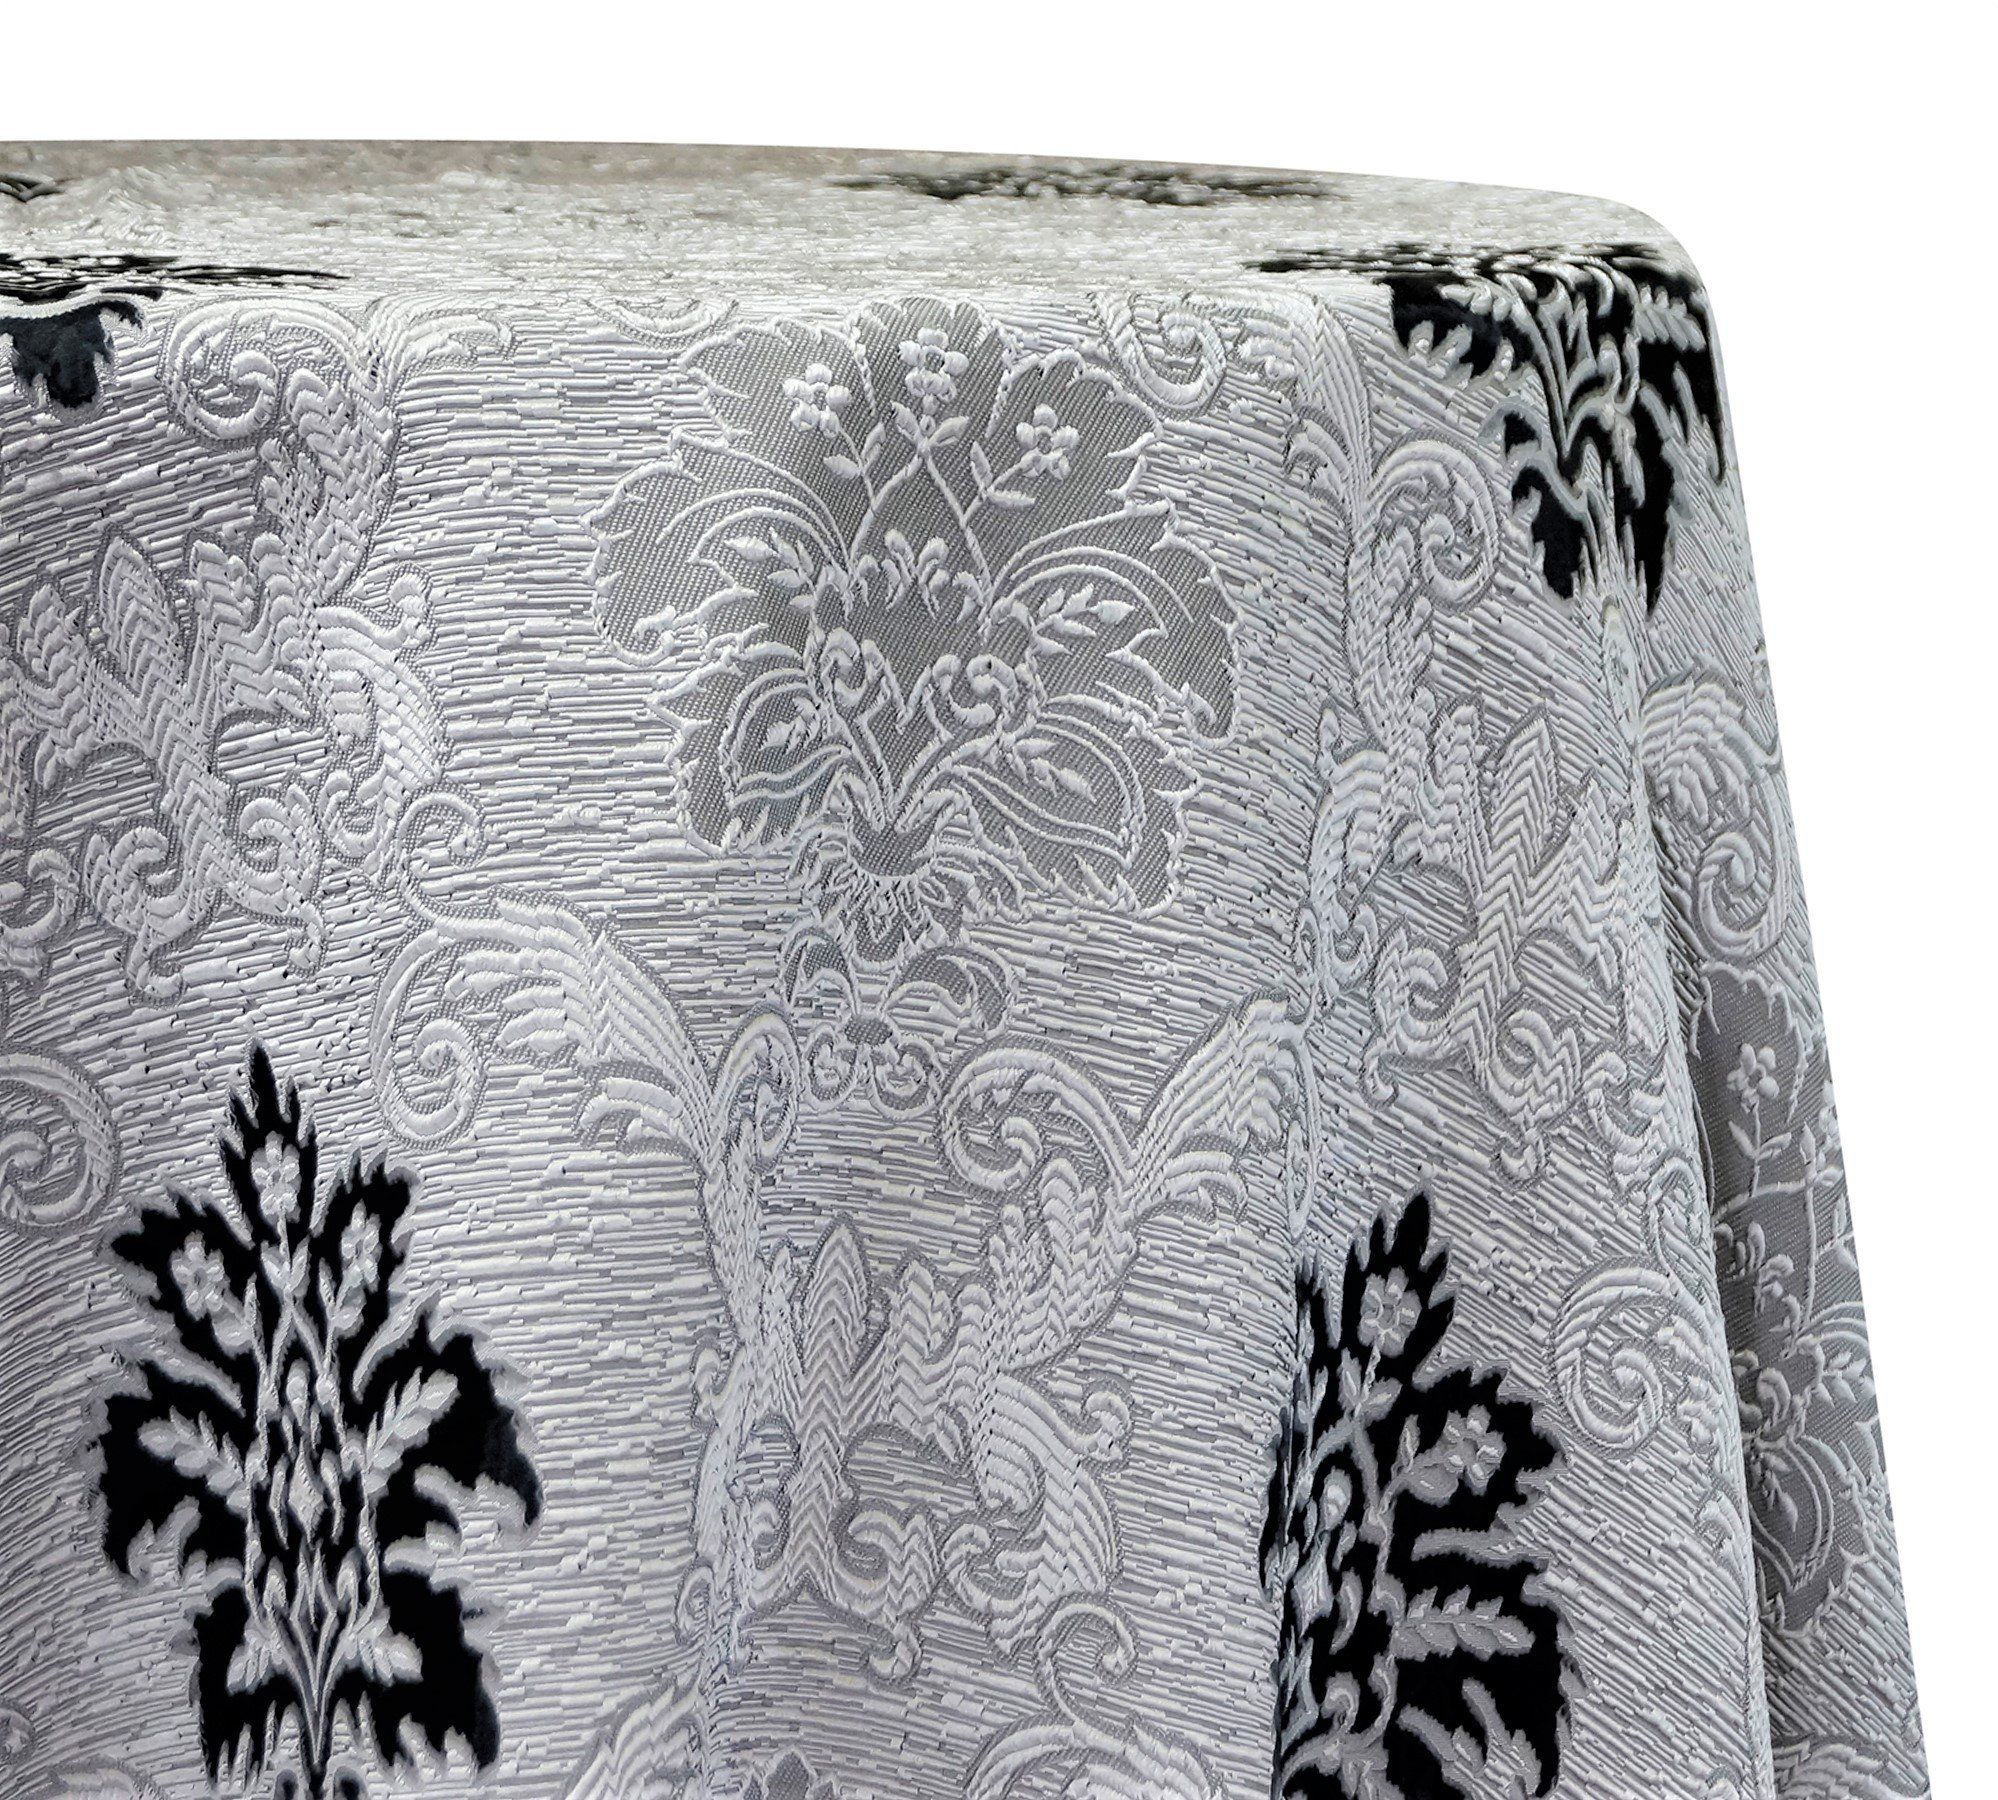 Regency Damask Sheer Tablecloths Overlays Damask Wholesale